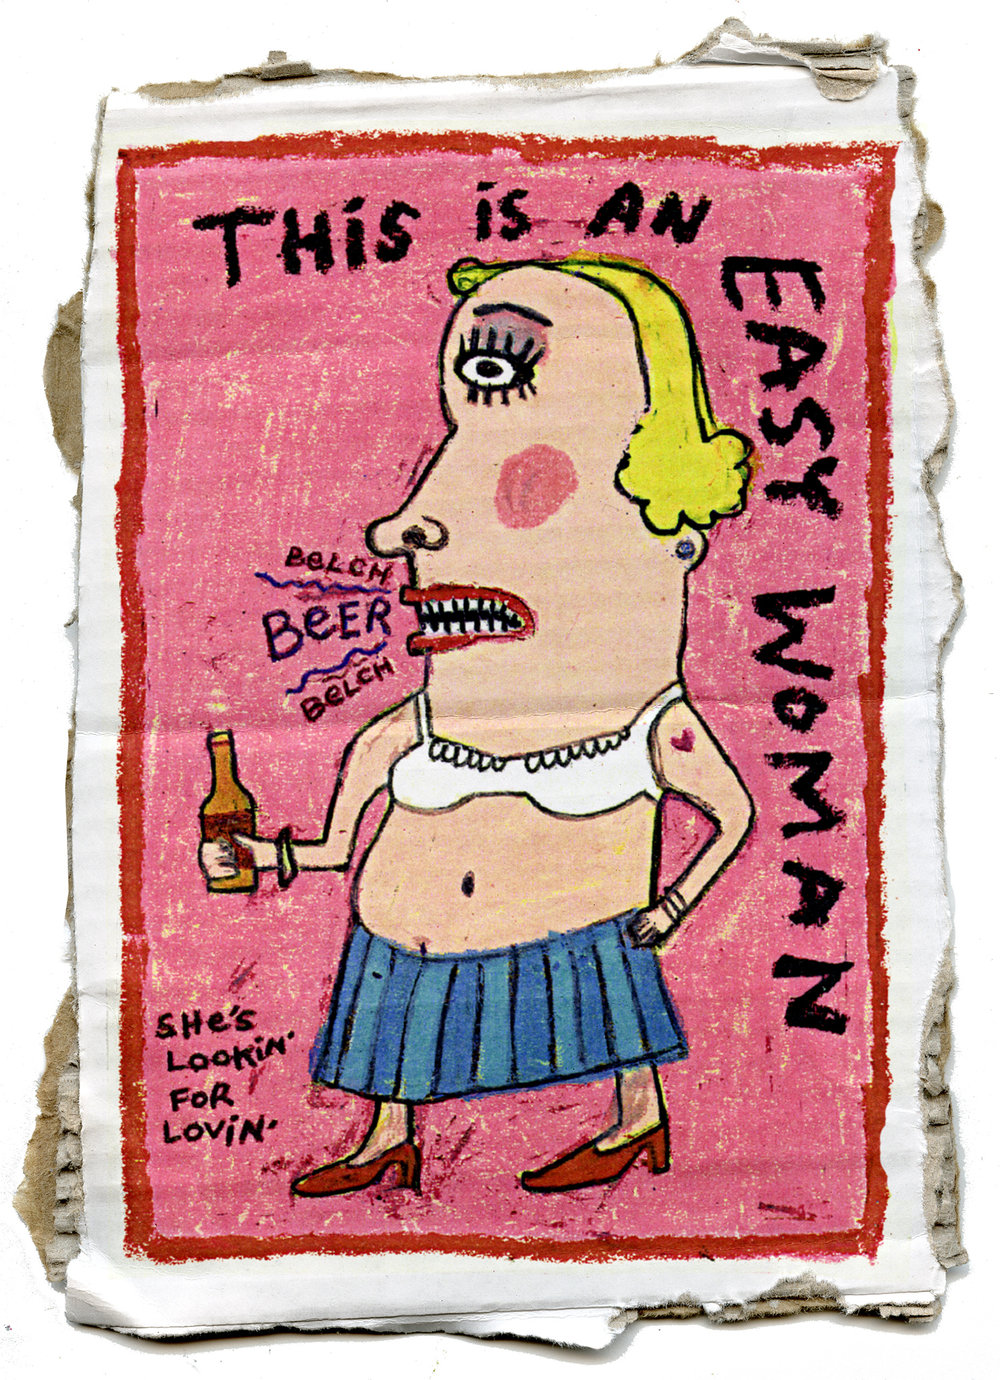 Easy WOman on Cardboard.jpg